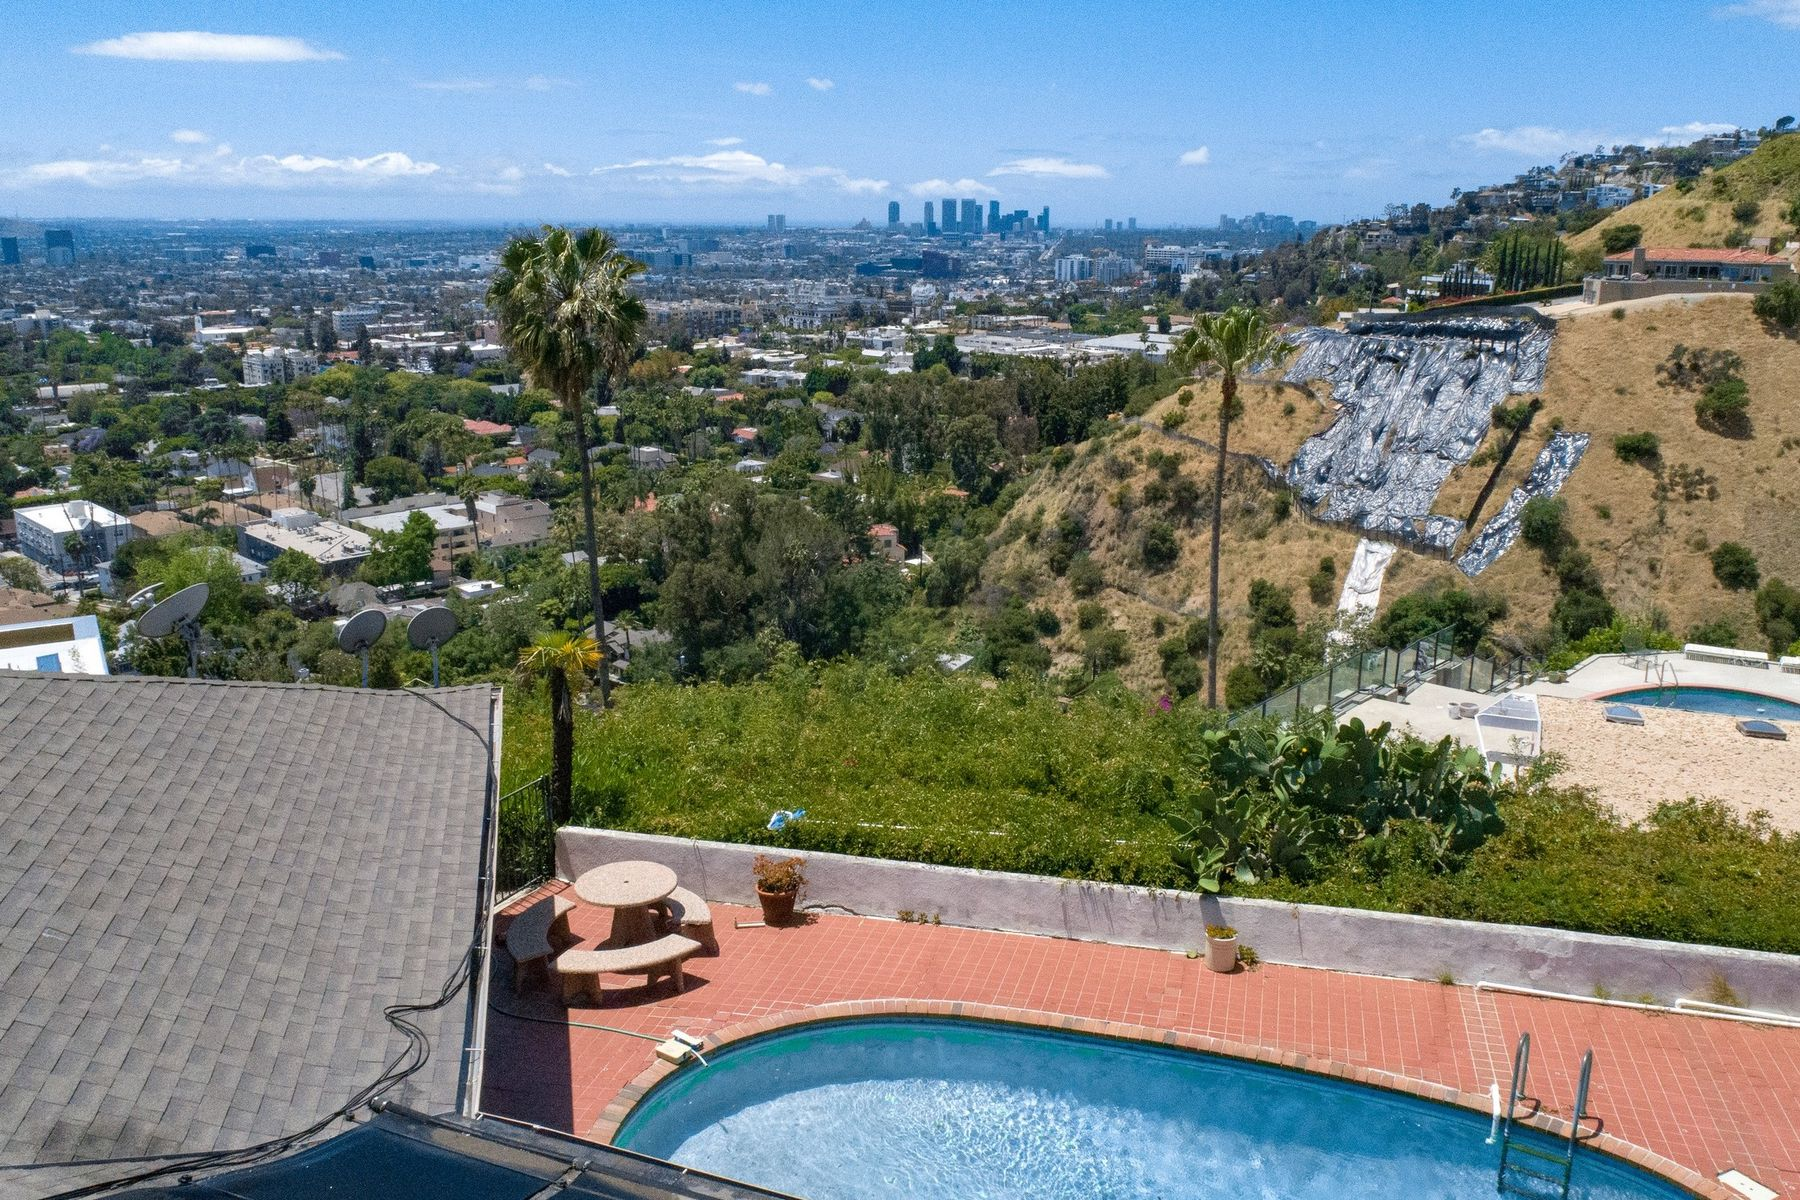 Single Family Homes for Sale at 1898 North Stanley Avenue Los Angeles, California 90046 United States